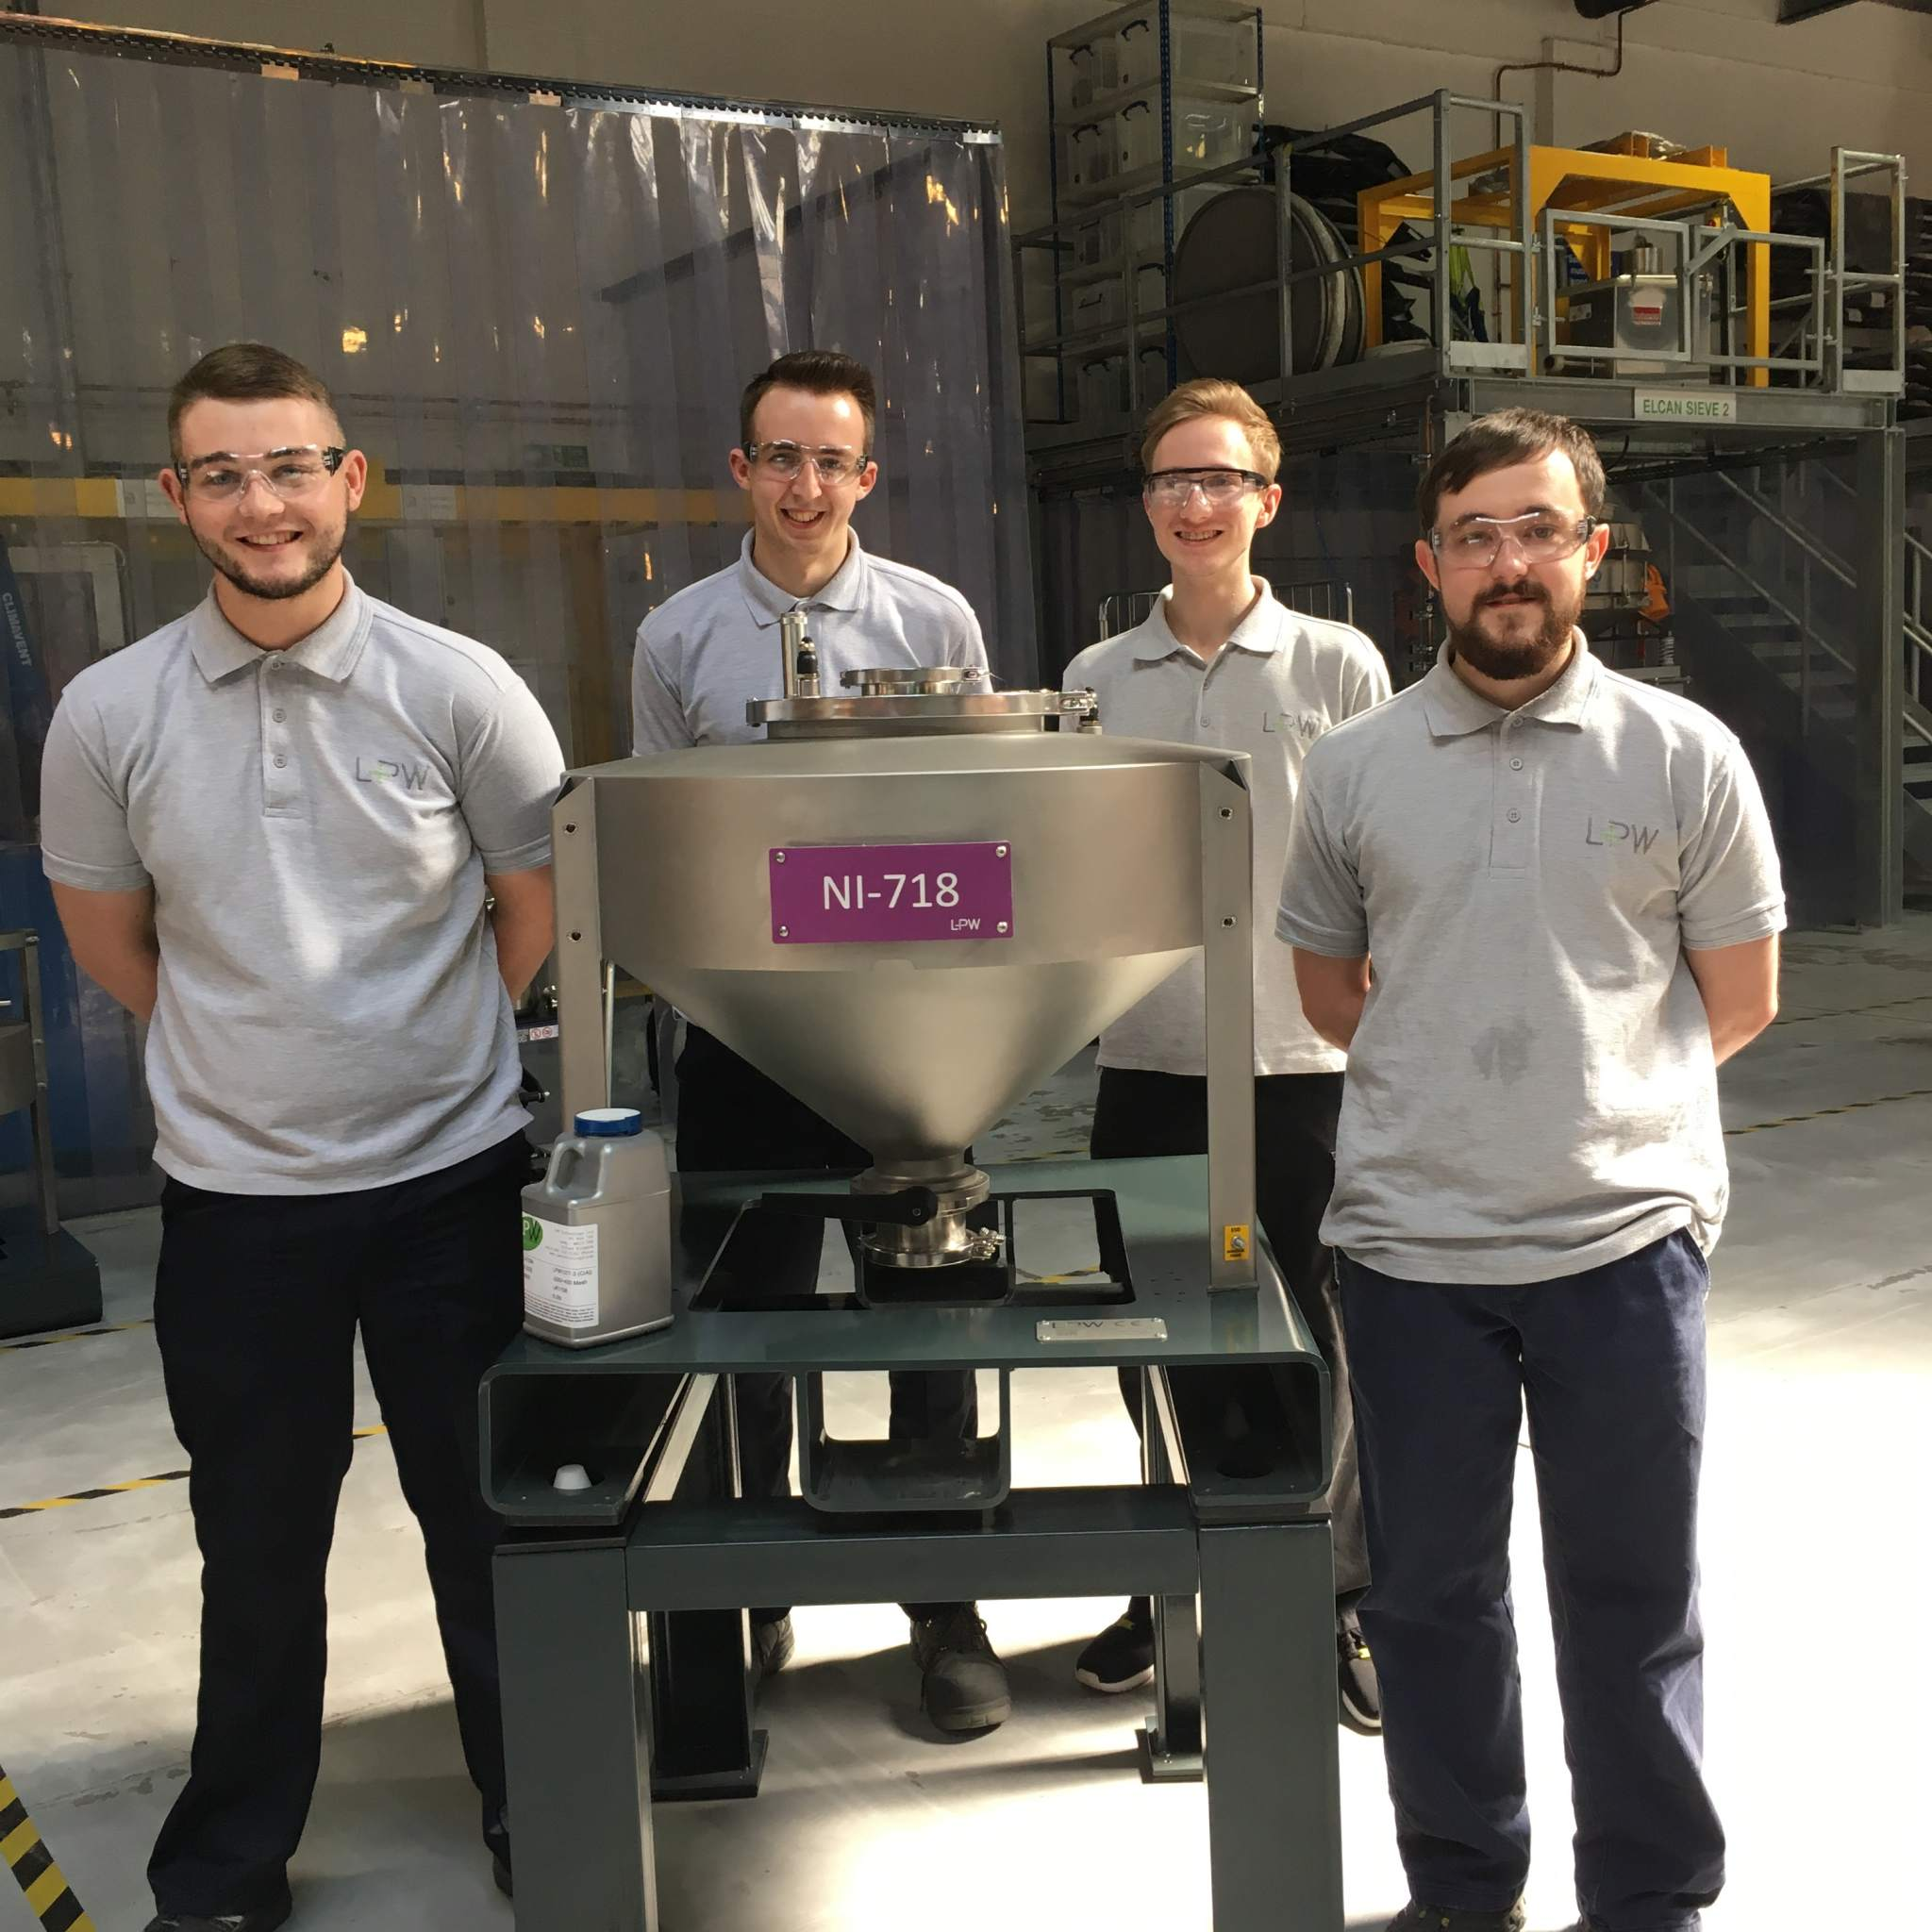 LPW's 2017 apprenticeship team with an original powder container. Photo via LPW Technology.